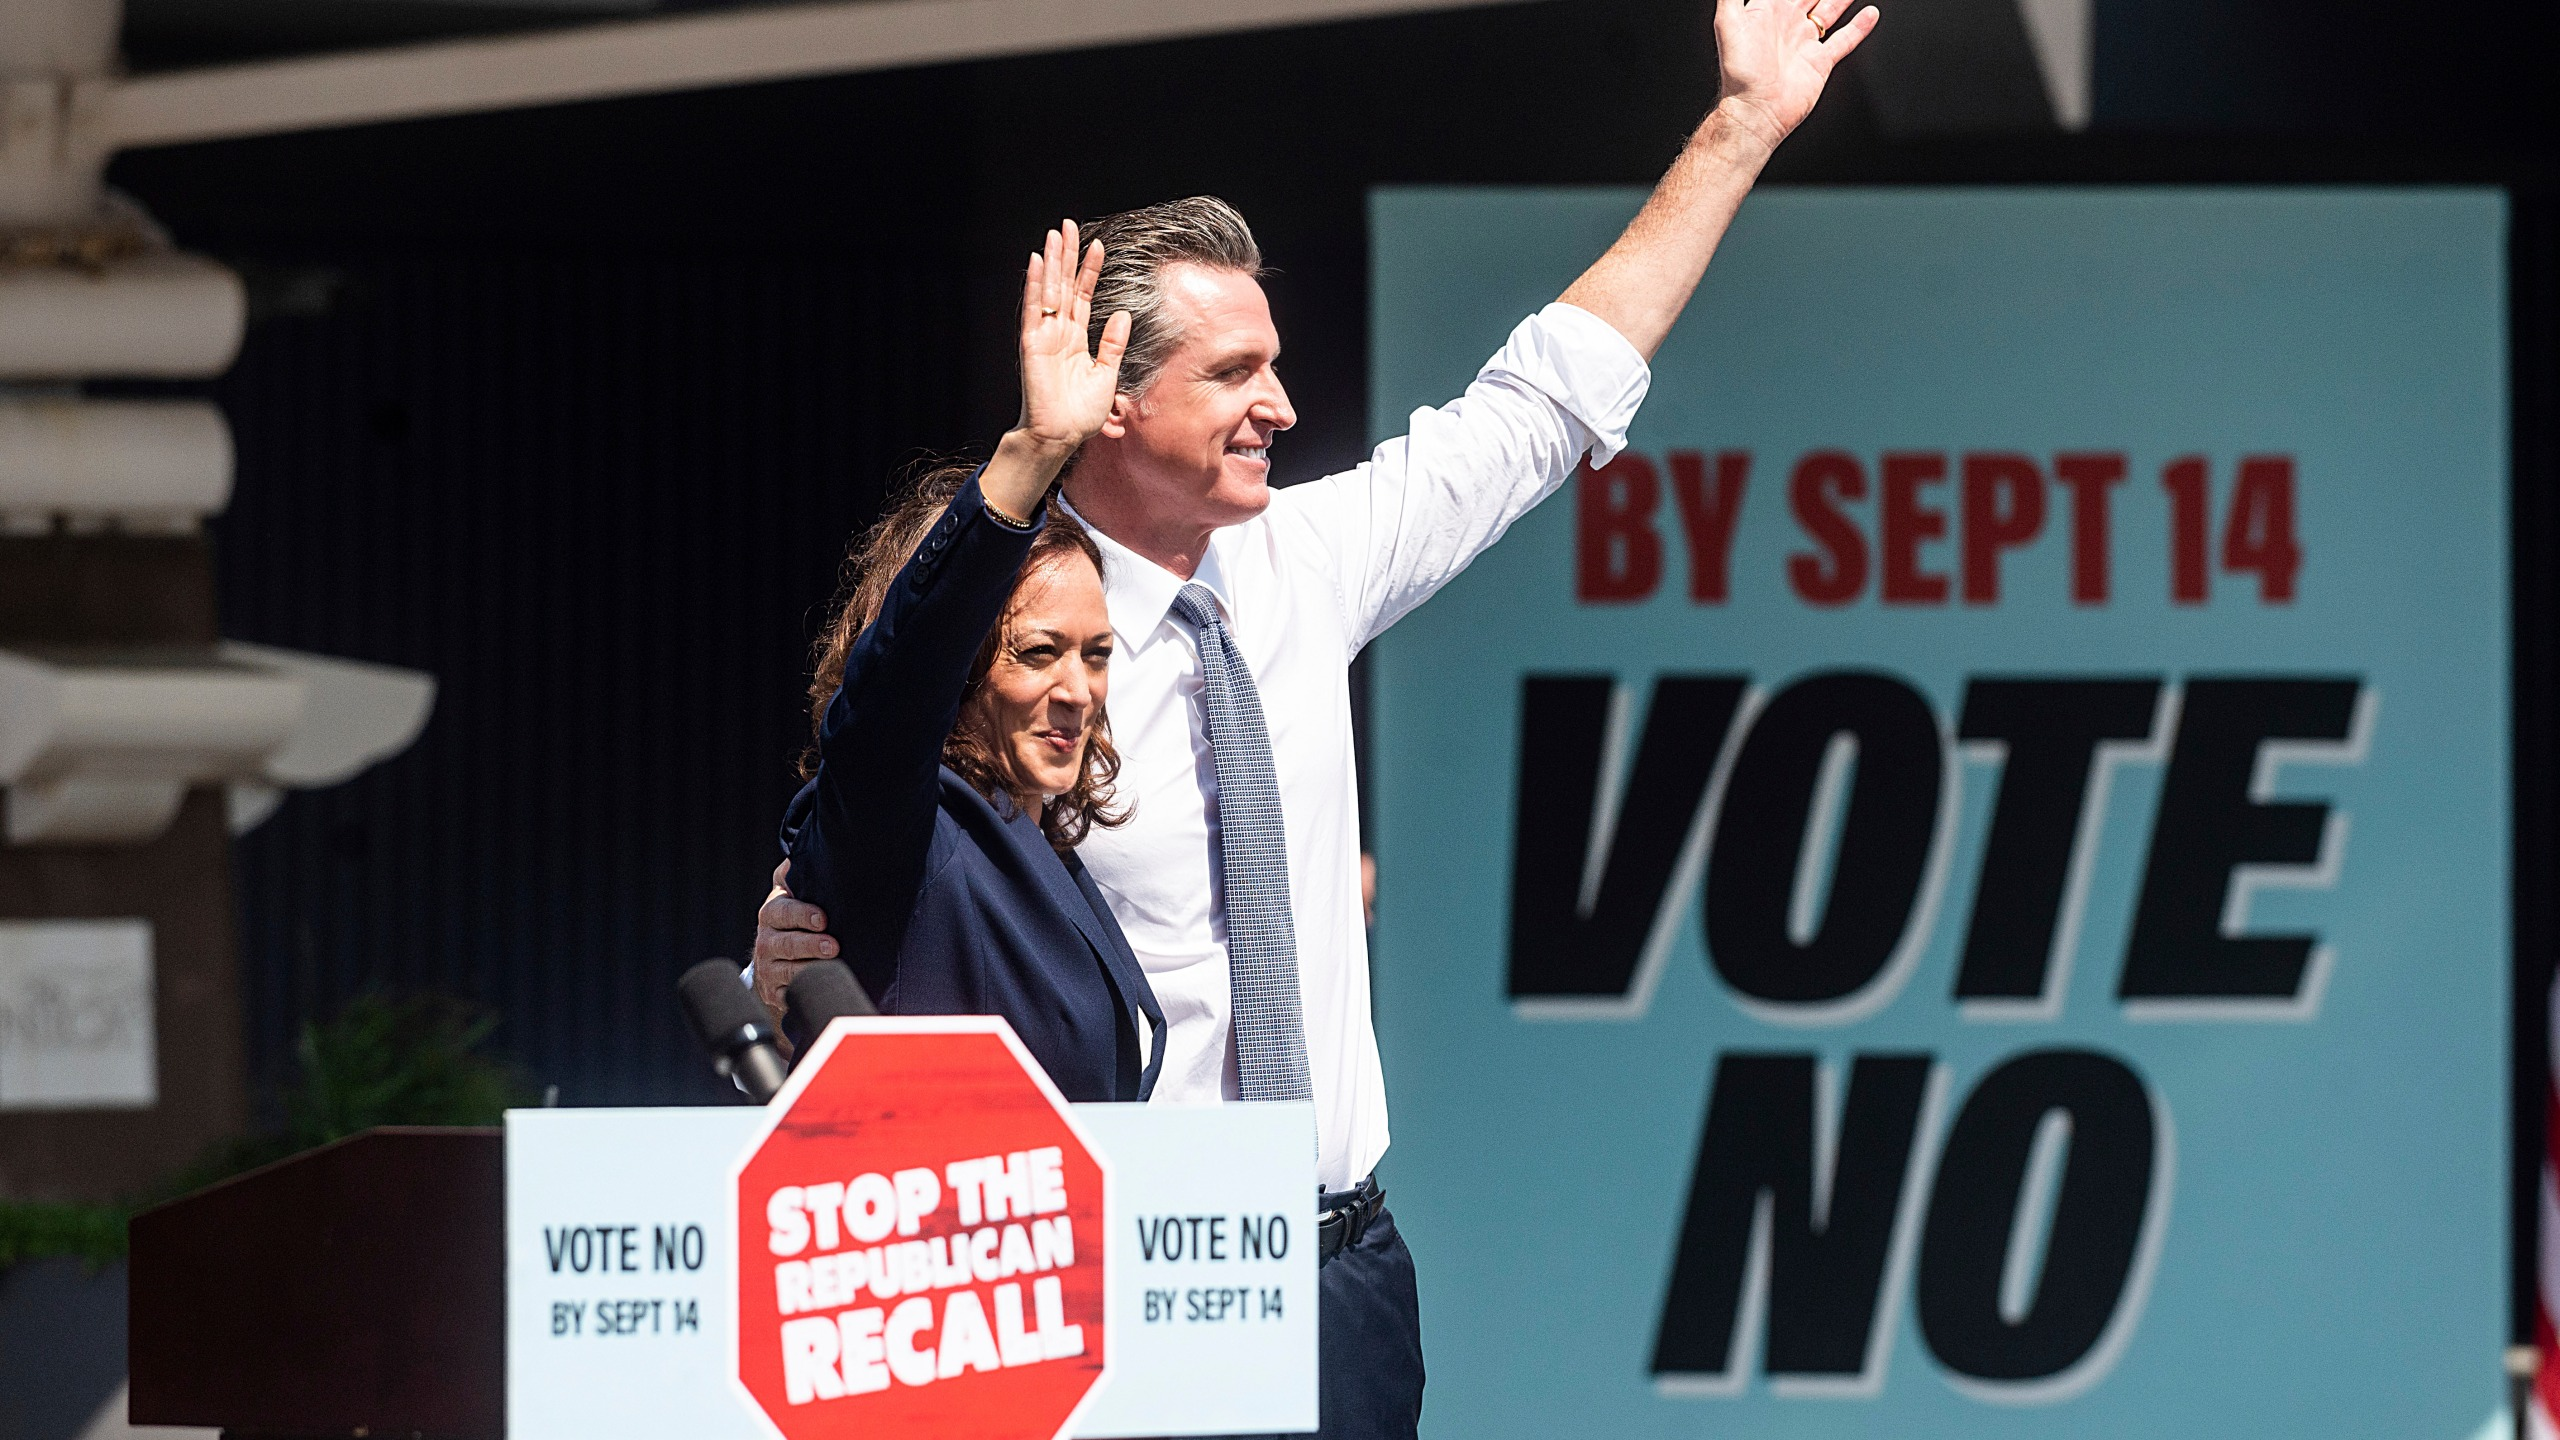 California Gov. Gavin Newsom will get a boost in the final days of a campaign that is trying to kick him out of office from the nation's most prominent Democrat: President Joe Biden. Biden will join the first-term Democratic governor in the Southern California city of Long Beach on Monday, the day before voting ends. He's the last of a string of prominent Democrats who have come to the deep-blue state to assist Newsom as he faces a recall election. Vice President Kamala Harris, a California native, campaigned alongside him Wednesday, and former President Barack Obama appeared in a campaign ad urging Californians to vote no on the recall. Biden's visit, his first to California since taking office in January, underscores the importance of his party maintaining the governorship in the nation's most populous state, which has the fifth-largest economy in the world. California has been the breeding ground for progressive policies on climate change, immigration and more. Beyond Harris, a handful of Biden's Cabinet members have roots in the state. Newsom also has been one of the most aggressive governors when it comes to the coronavirus, mandating that children wear masks in school and that health care workers get the vaccine. His restrictions on businesses and schools have been a driving force behind the recall as the pandemic remains a dominant force in American life during the first year of Biden's presidency. The visit also gives Biden a chance to demonstrate his political clout amid a difficult stretch of his presidency following the U.S. withdrawal from Afghanistan. A poll by the Public Policy Institute of California taken from Aug. 20-29 showed 58% of Californians approve of Biden's job performance. A terrorist attack in Afghanistan killed 13 U.S. service members and many more Afghans on Aug. 26. The California Republican Party criticized Harris' visit, saying it was inappropriate for her to campaign while Californians remain stuck in Afghanistan. On Thursday, an est